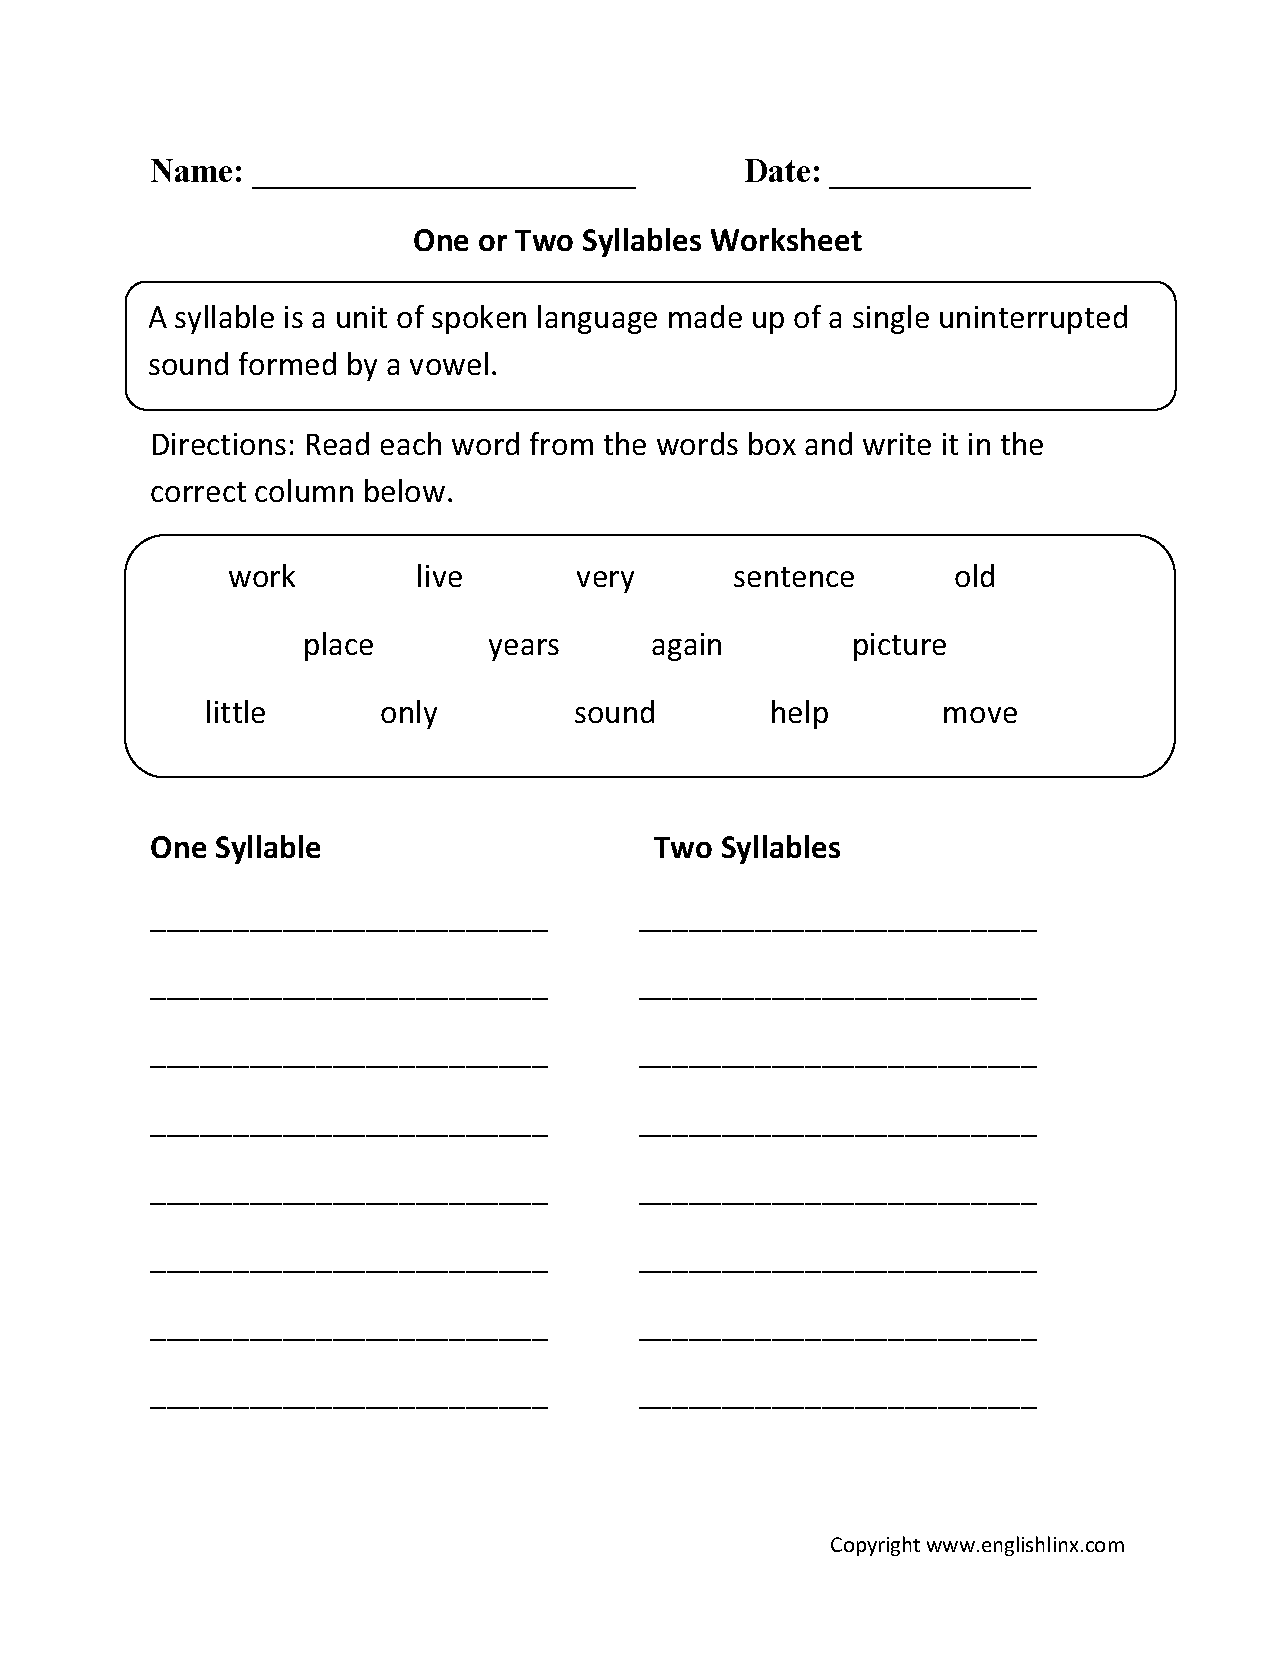 Aldiablosus  Outstanding Englishlinxcom  Syllables Worksheets With Fascinating Syllables Worksheets With Astounding Partial Product Multiplication Worksheet Also Dividing Decimal By Decimal Worksheet In Addition Preschool Letter K Worksheets And Hawaii Child Support Worksheet As Well As Letter G Worksheets For Kindergarten Additionally Math Worksheets For Th Grade To Print From Englishlinxcom With Aldiablosus  Fascinating Englishlinxcom  Syllables Worksheets With Astounding Syllables Worksheets And Outstanding Partial Product Multiplication Worksheet Also Dividing Decimal By Decimal Worksheet In Addition Preschool Letter K Worksheets From Englishlinxcom